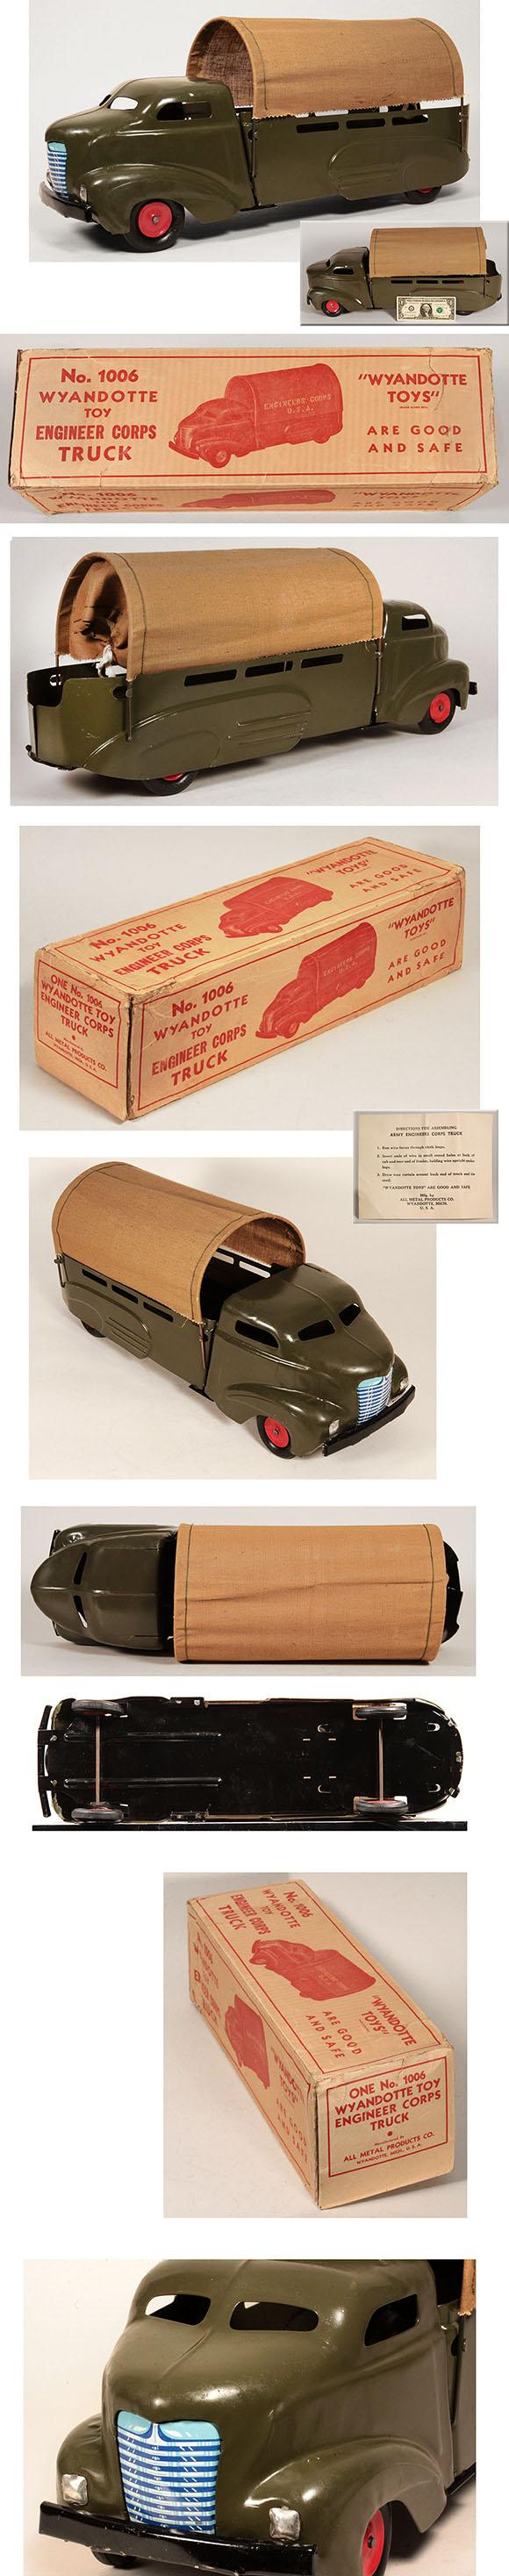 1941 Wyandotte, No.1006 Army Engineer Corps Truck in Original Box